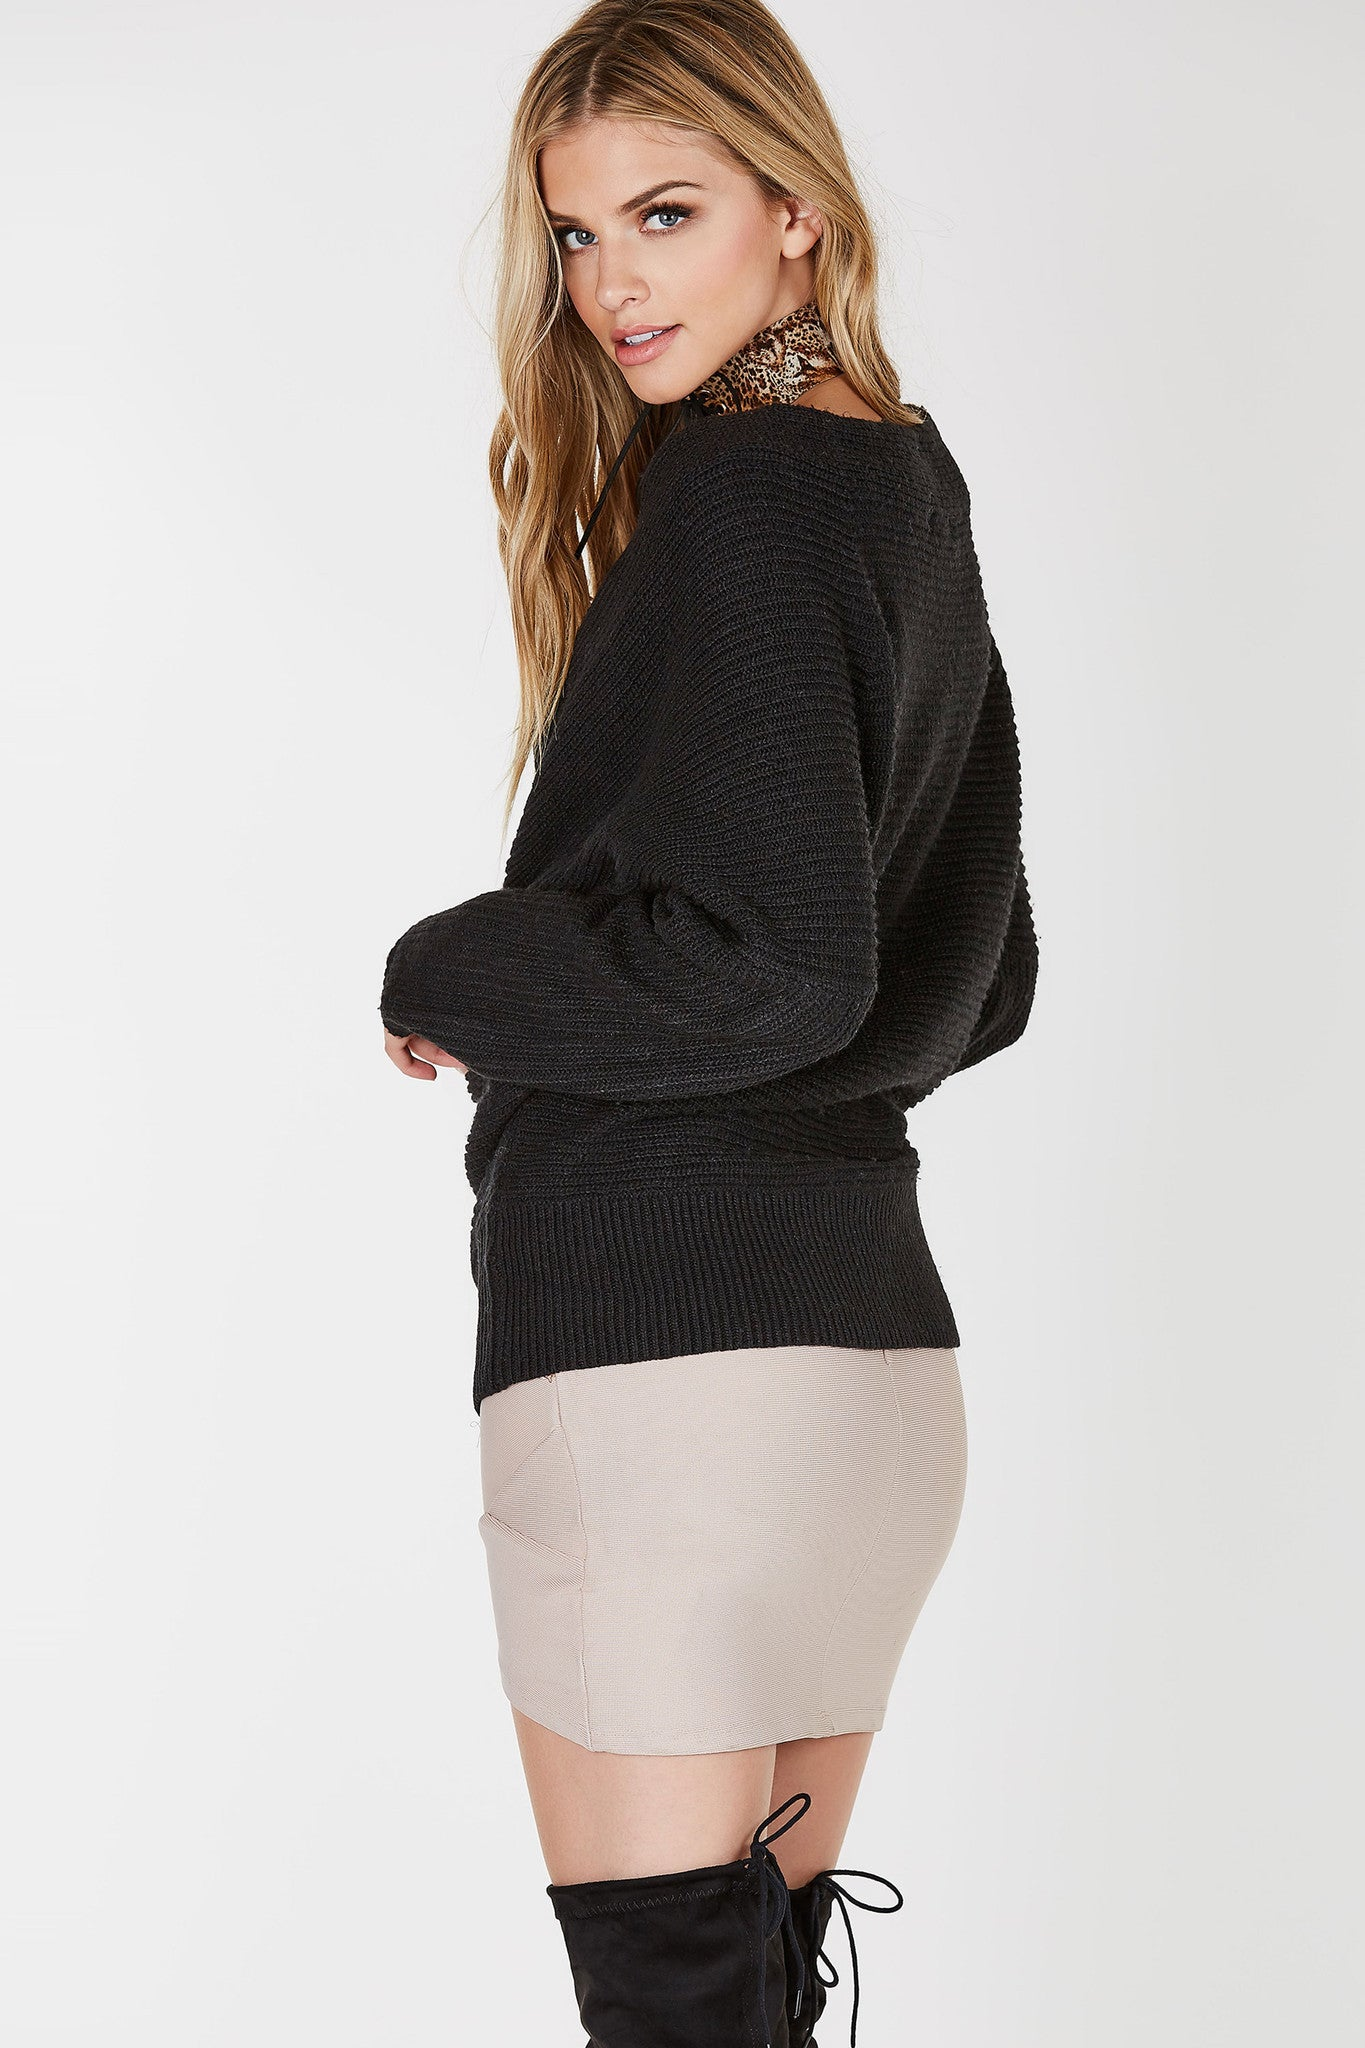 Long sleeve tight knit sweater with draped open front. Relaxed fit with straight hem all around.